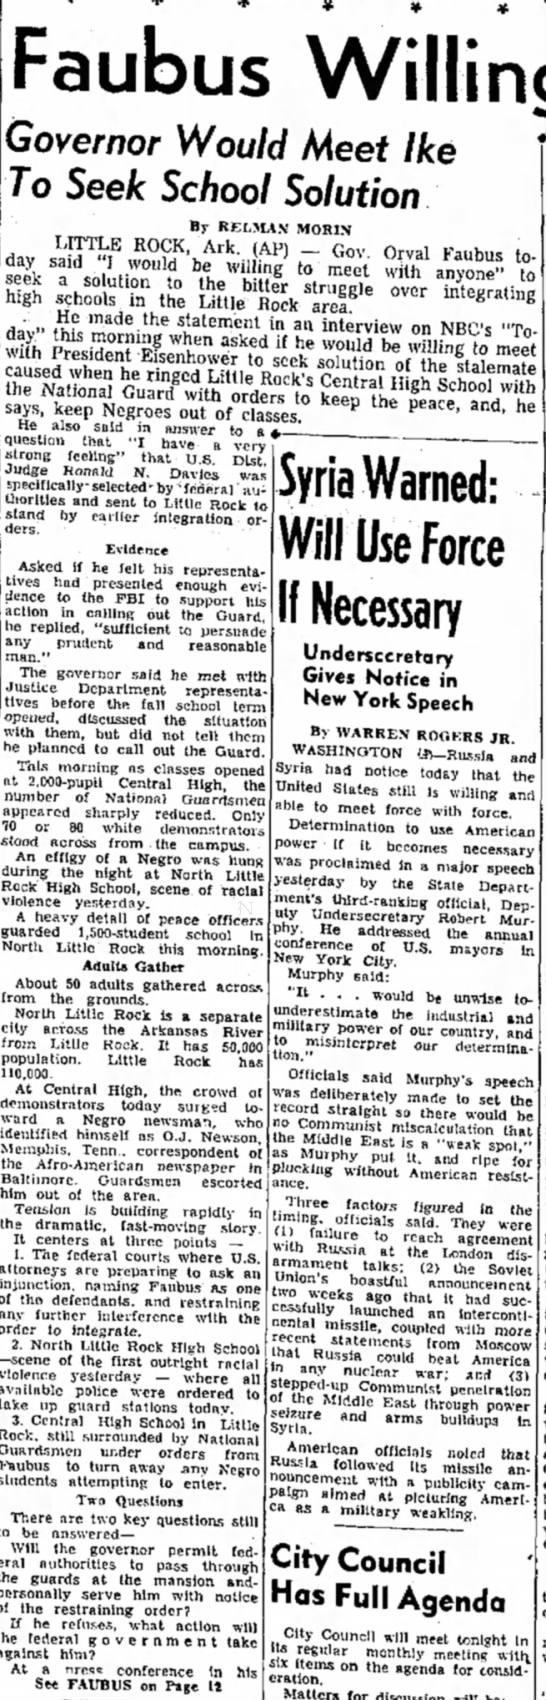 Faubus Willing to Talk: Governor would meet ikr to seek School solution